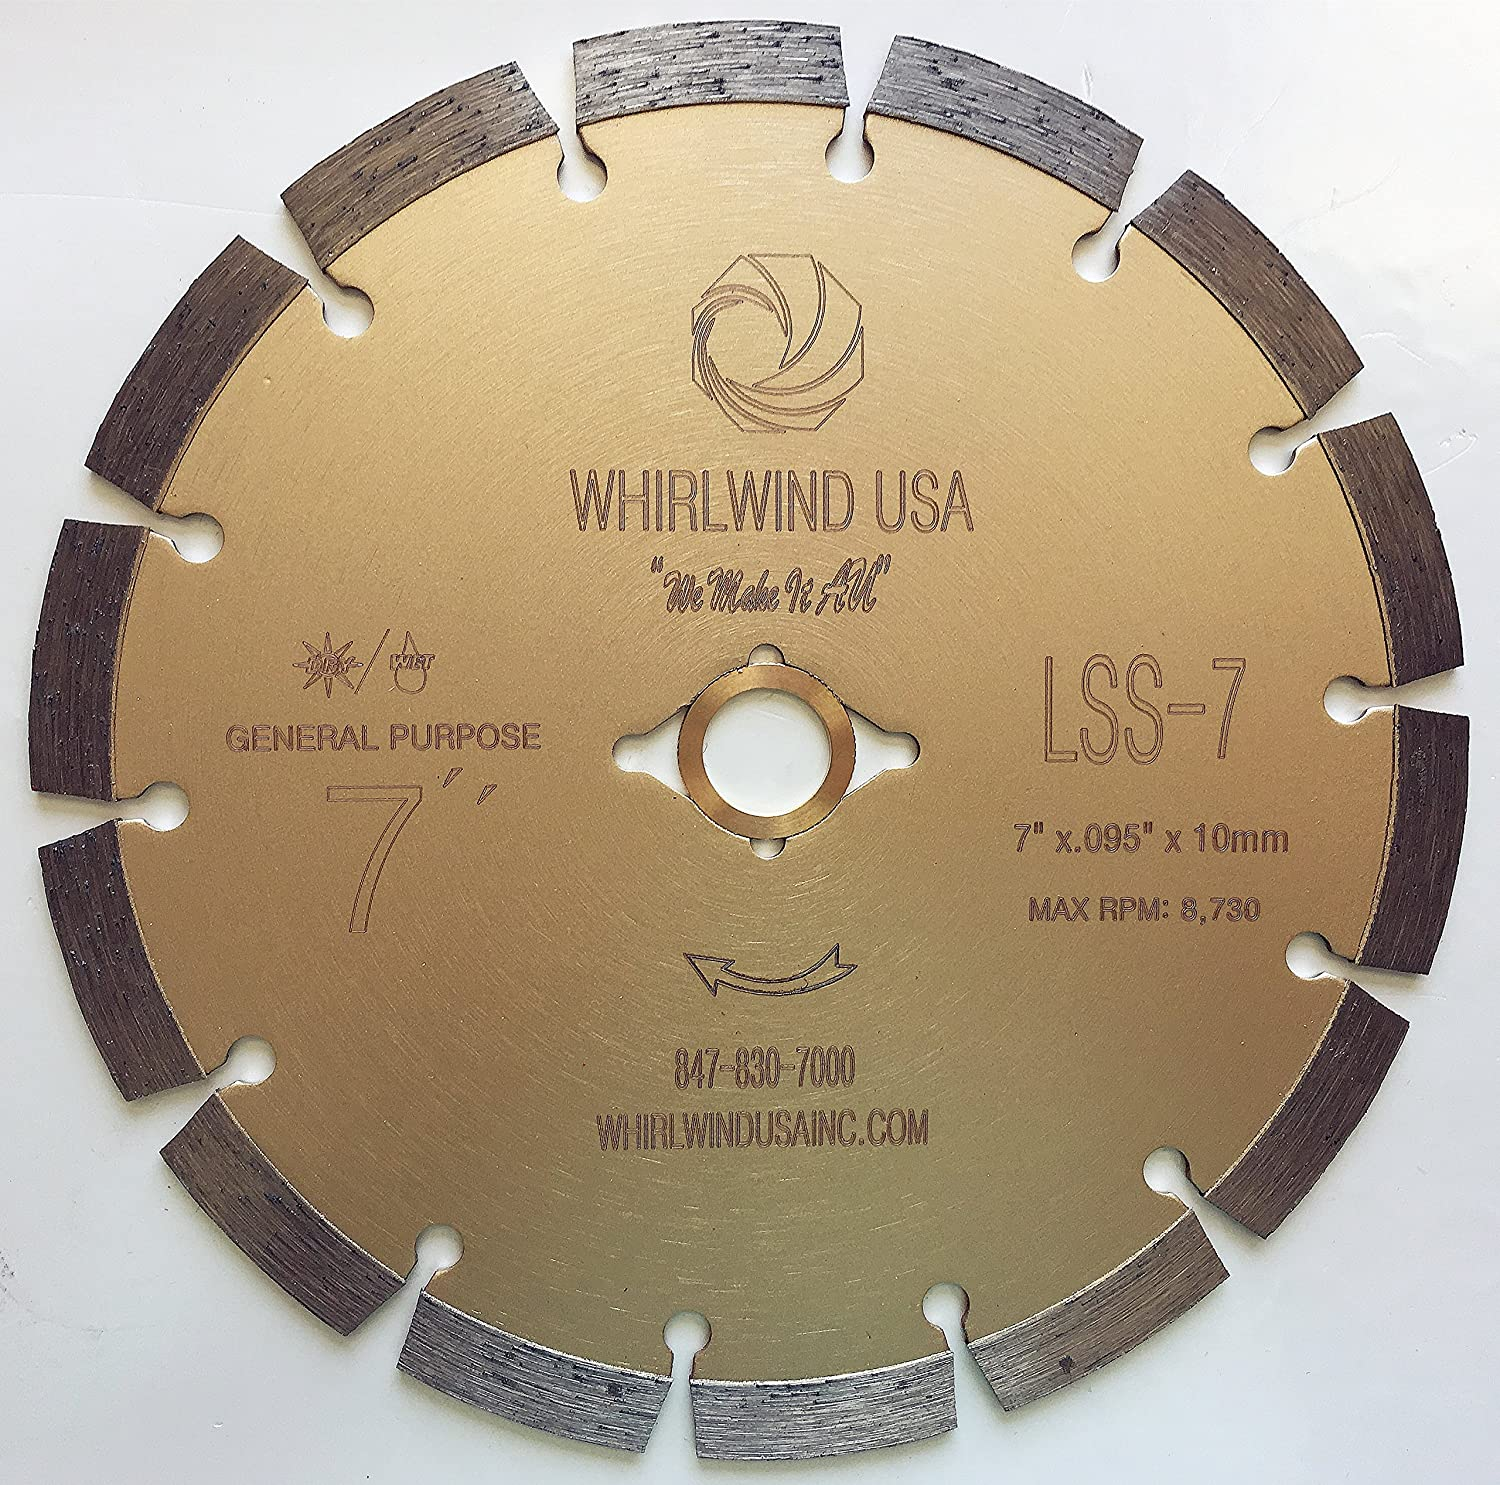 "Whirlwind USA LSS 7-Inch Dry or Wet Cutting General Purpose Power Saw Segmented Diamond Blades for Concrete Stone Brick Masonry (Factory Direct Sale) (7"")"